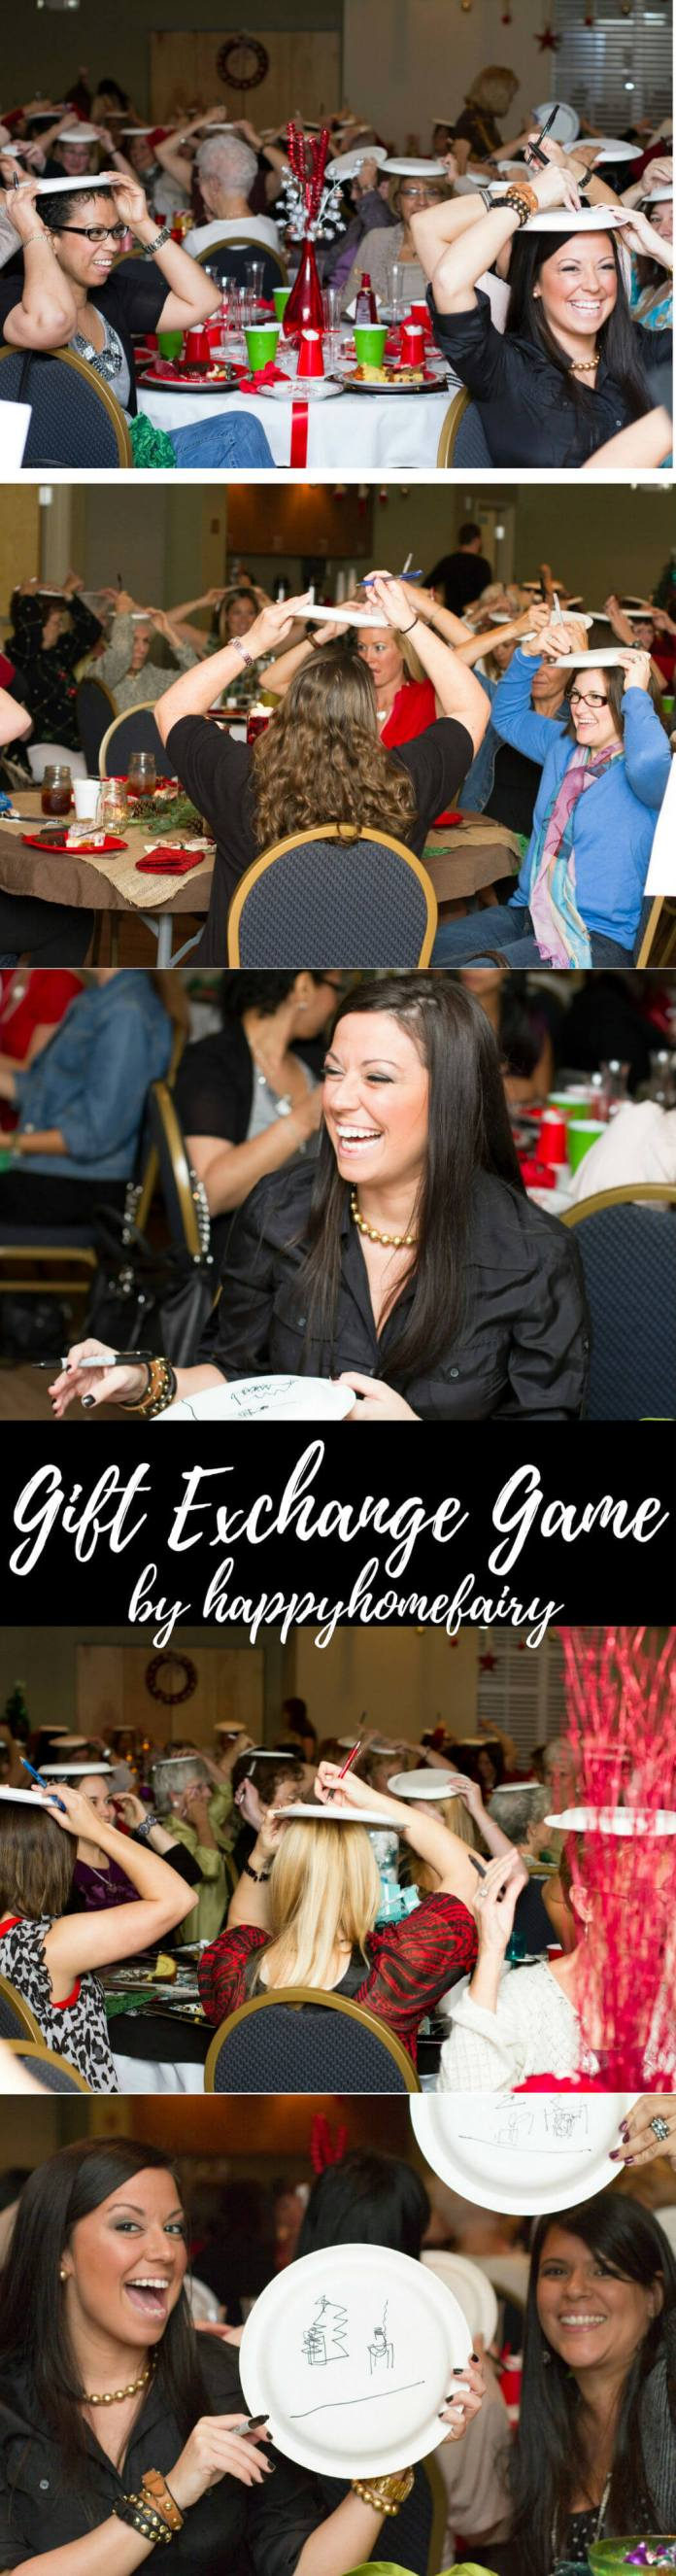 Gift Exchange Game | Christmas Party Games for Adults - FarmFoodFamily.com